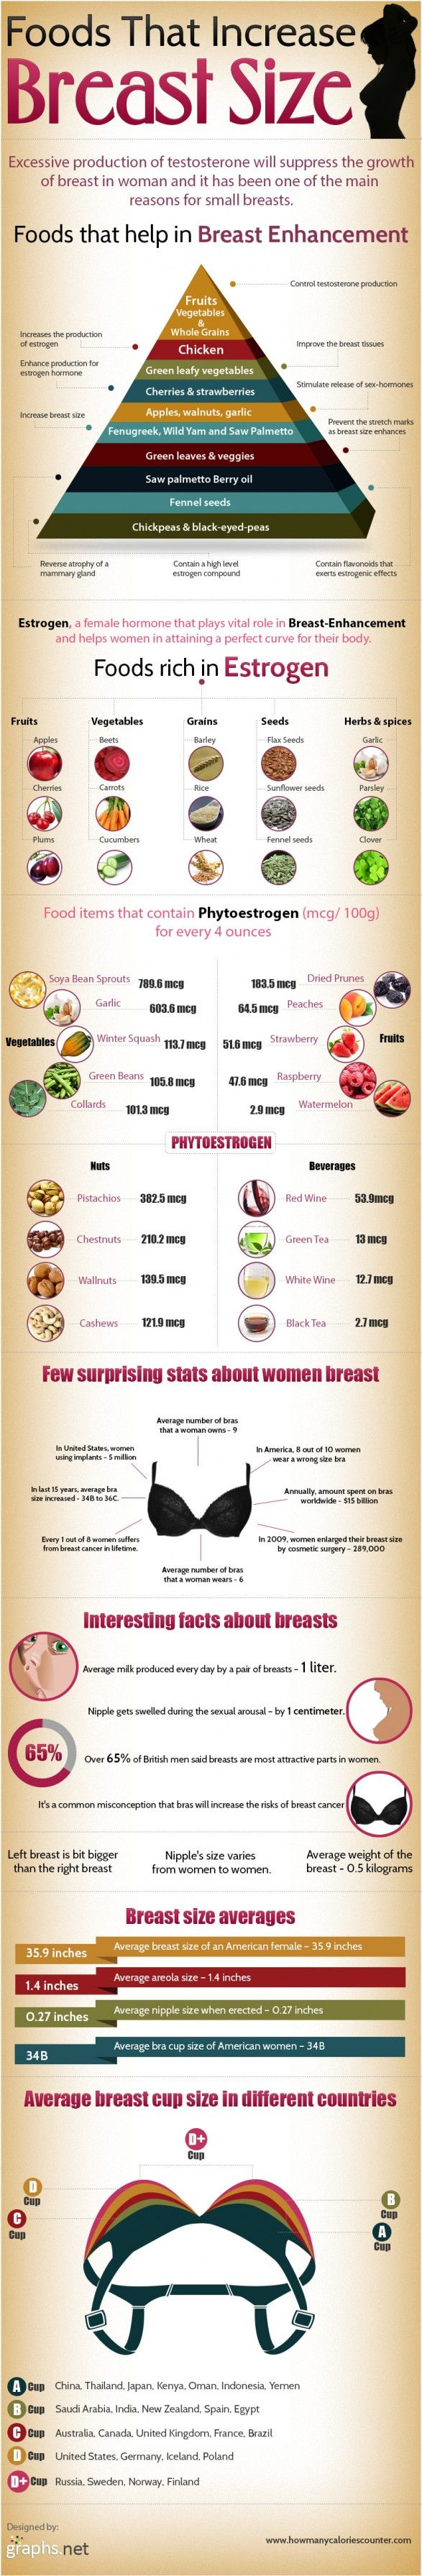 Foods that Increase Breast Size | Nutrition | Pinterest